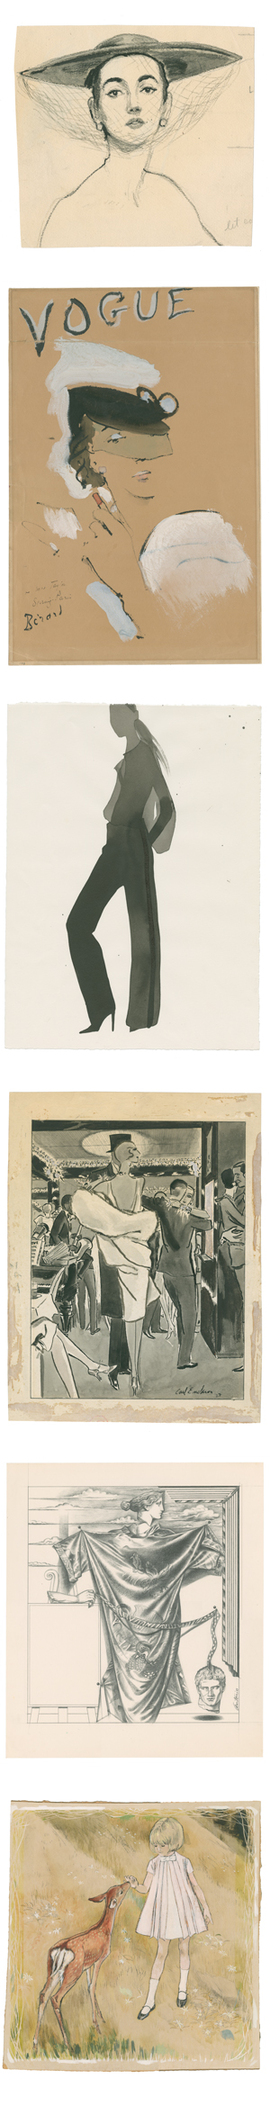 Selected works on paper from the Frances Neady collection